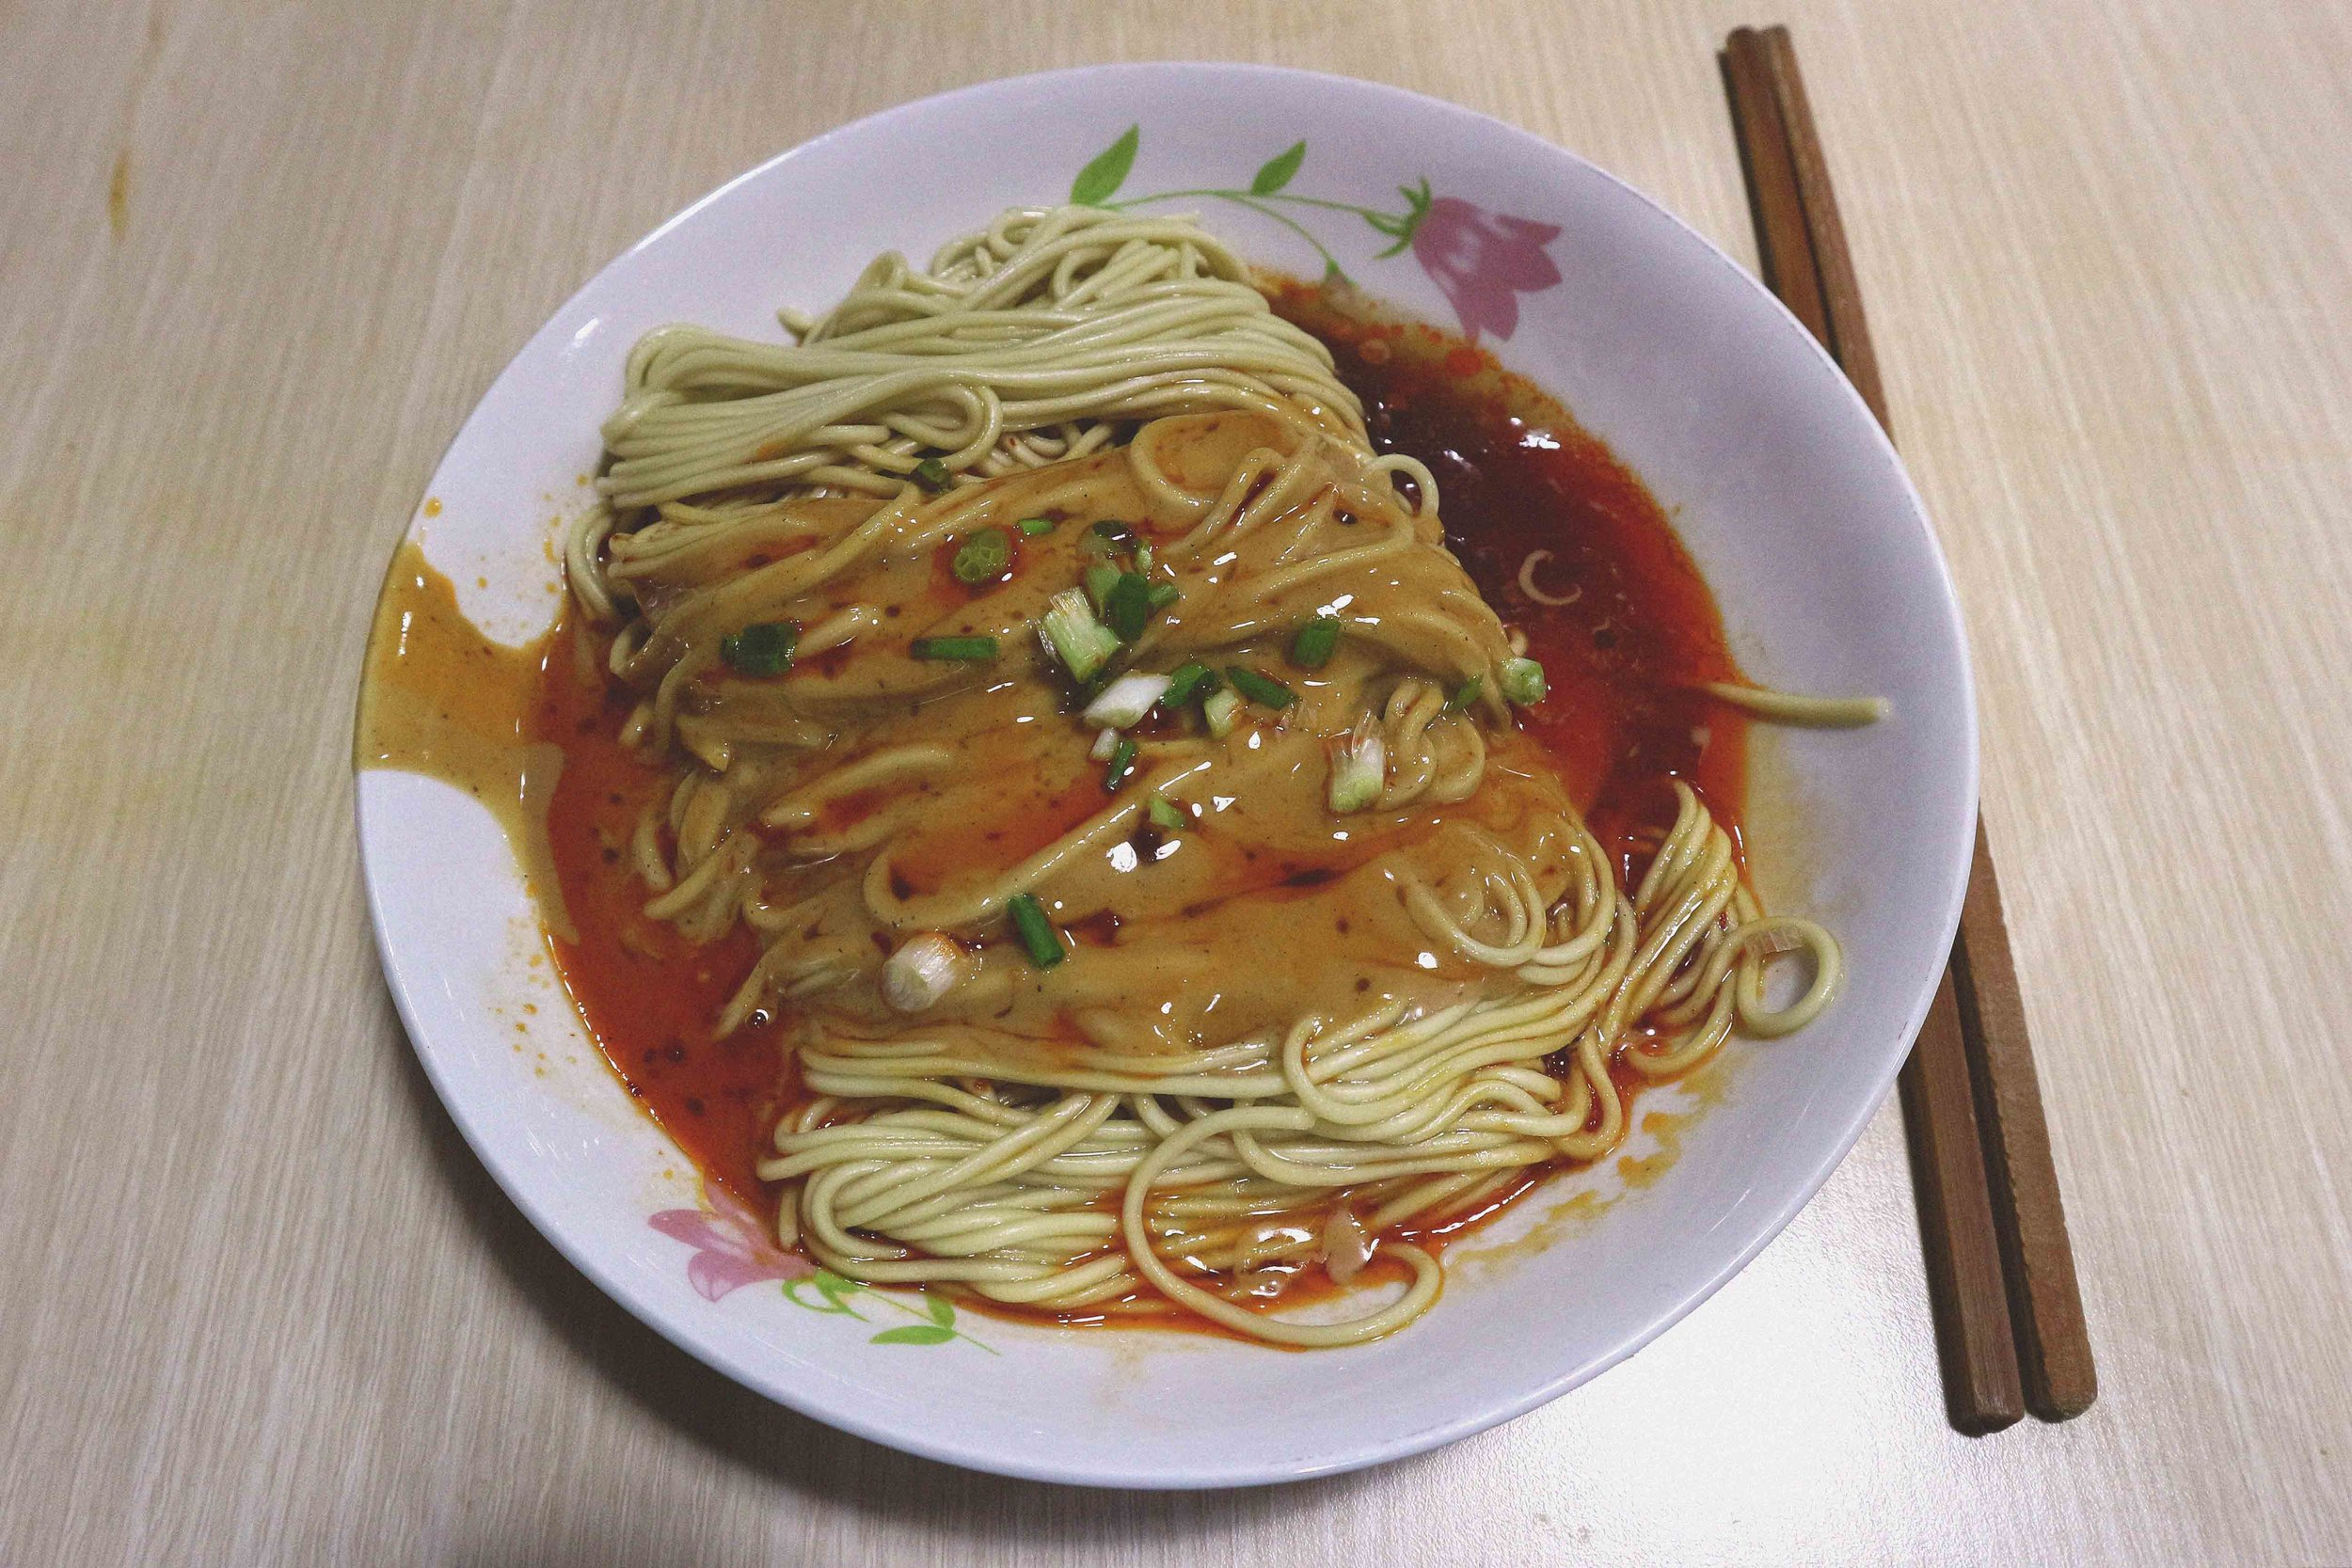 Delicious peanut and sesame noodles